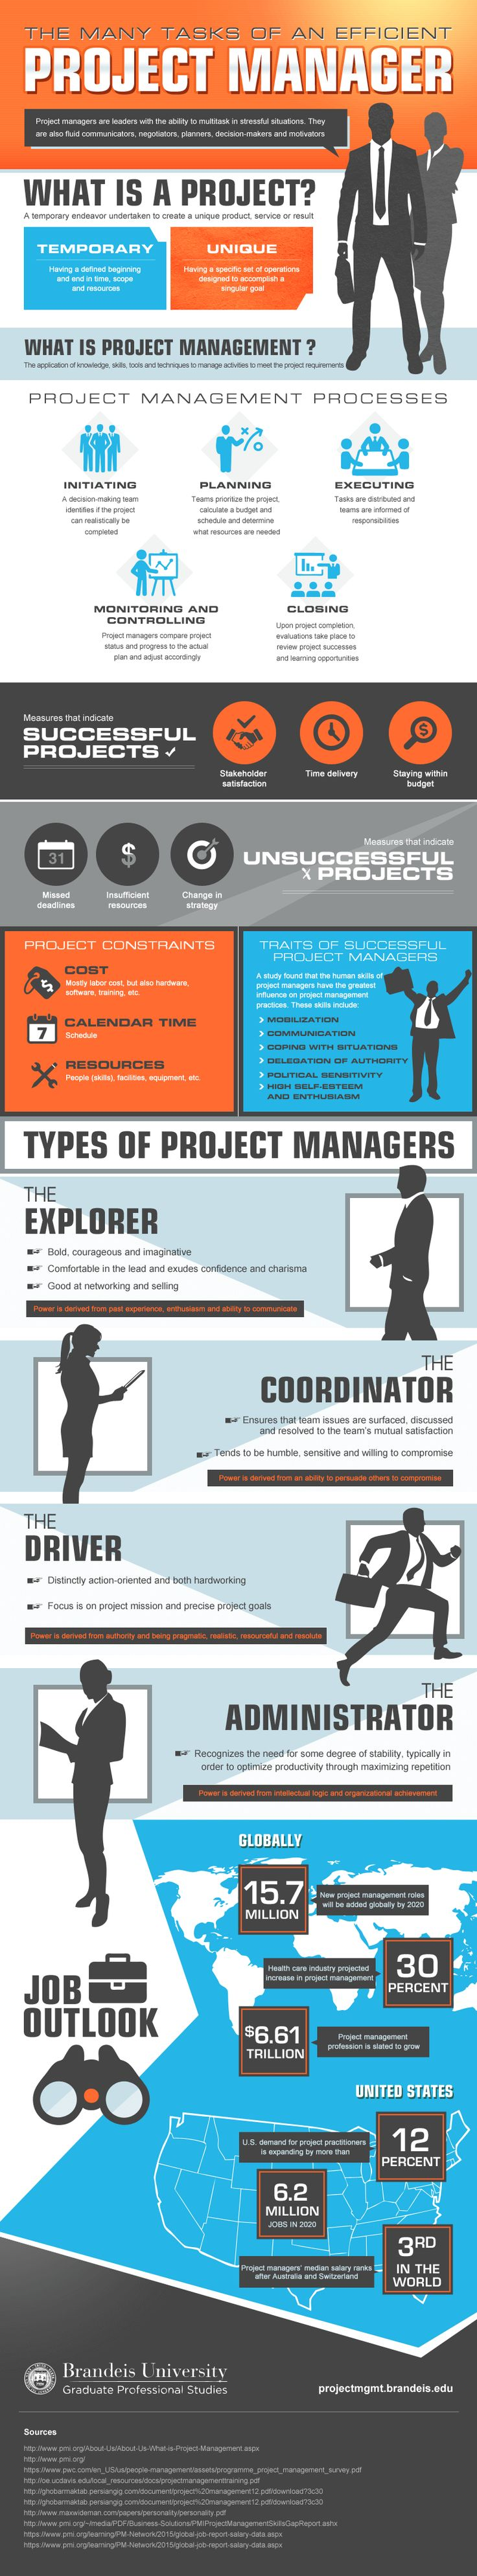 The Many Tasks Of An Efficient Project Manager #Infographic #ProjectManagement